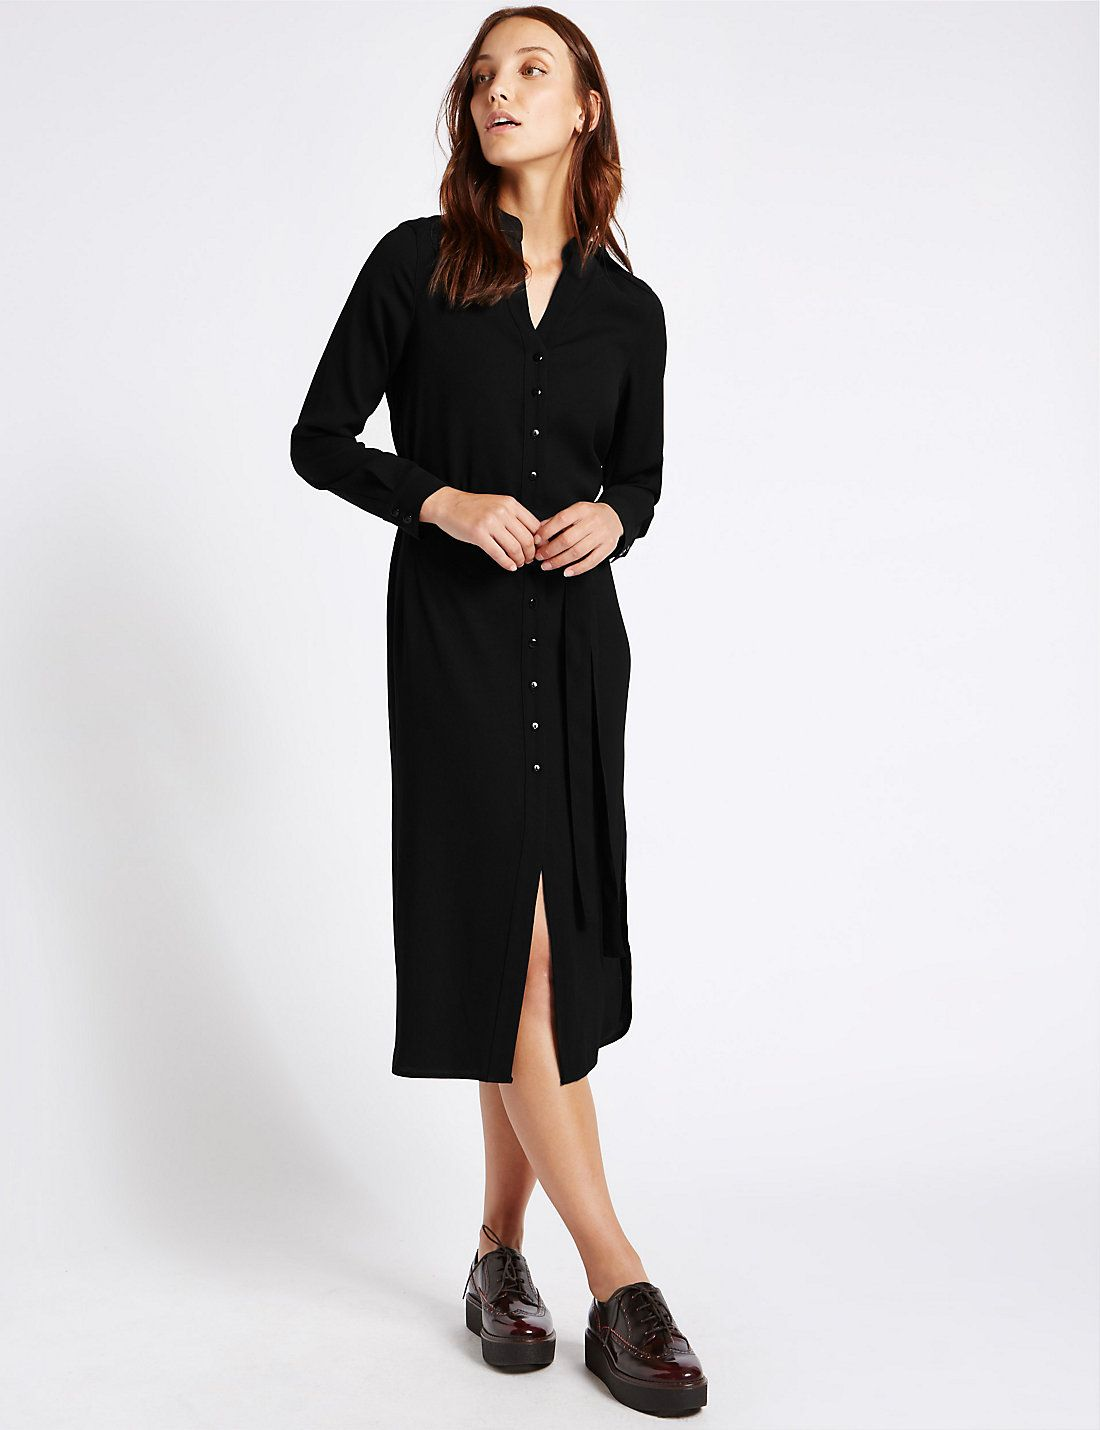 Long sleeve shirt midi dress with belt midi dresses and workwear